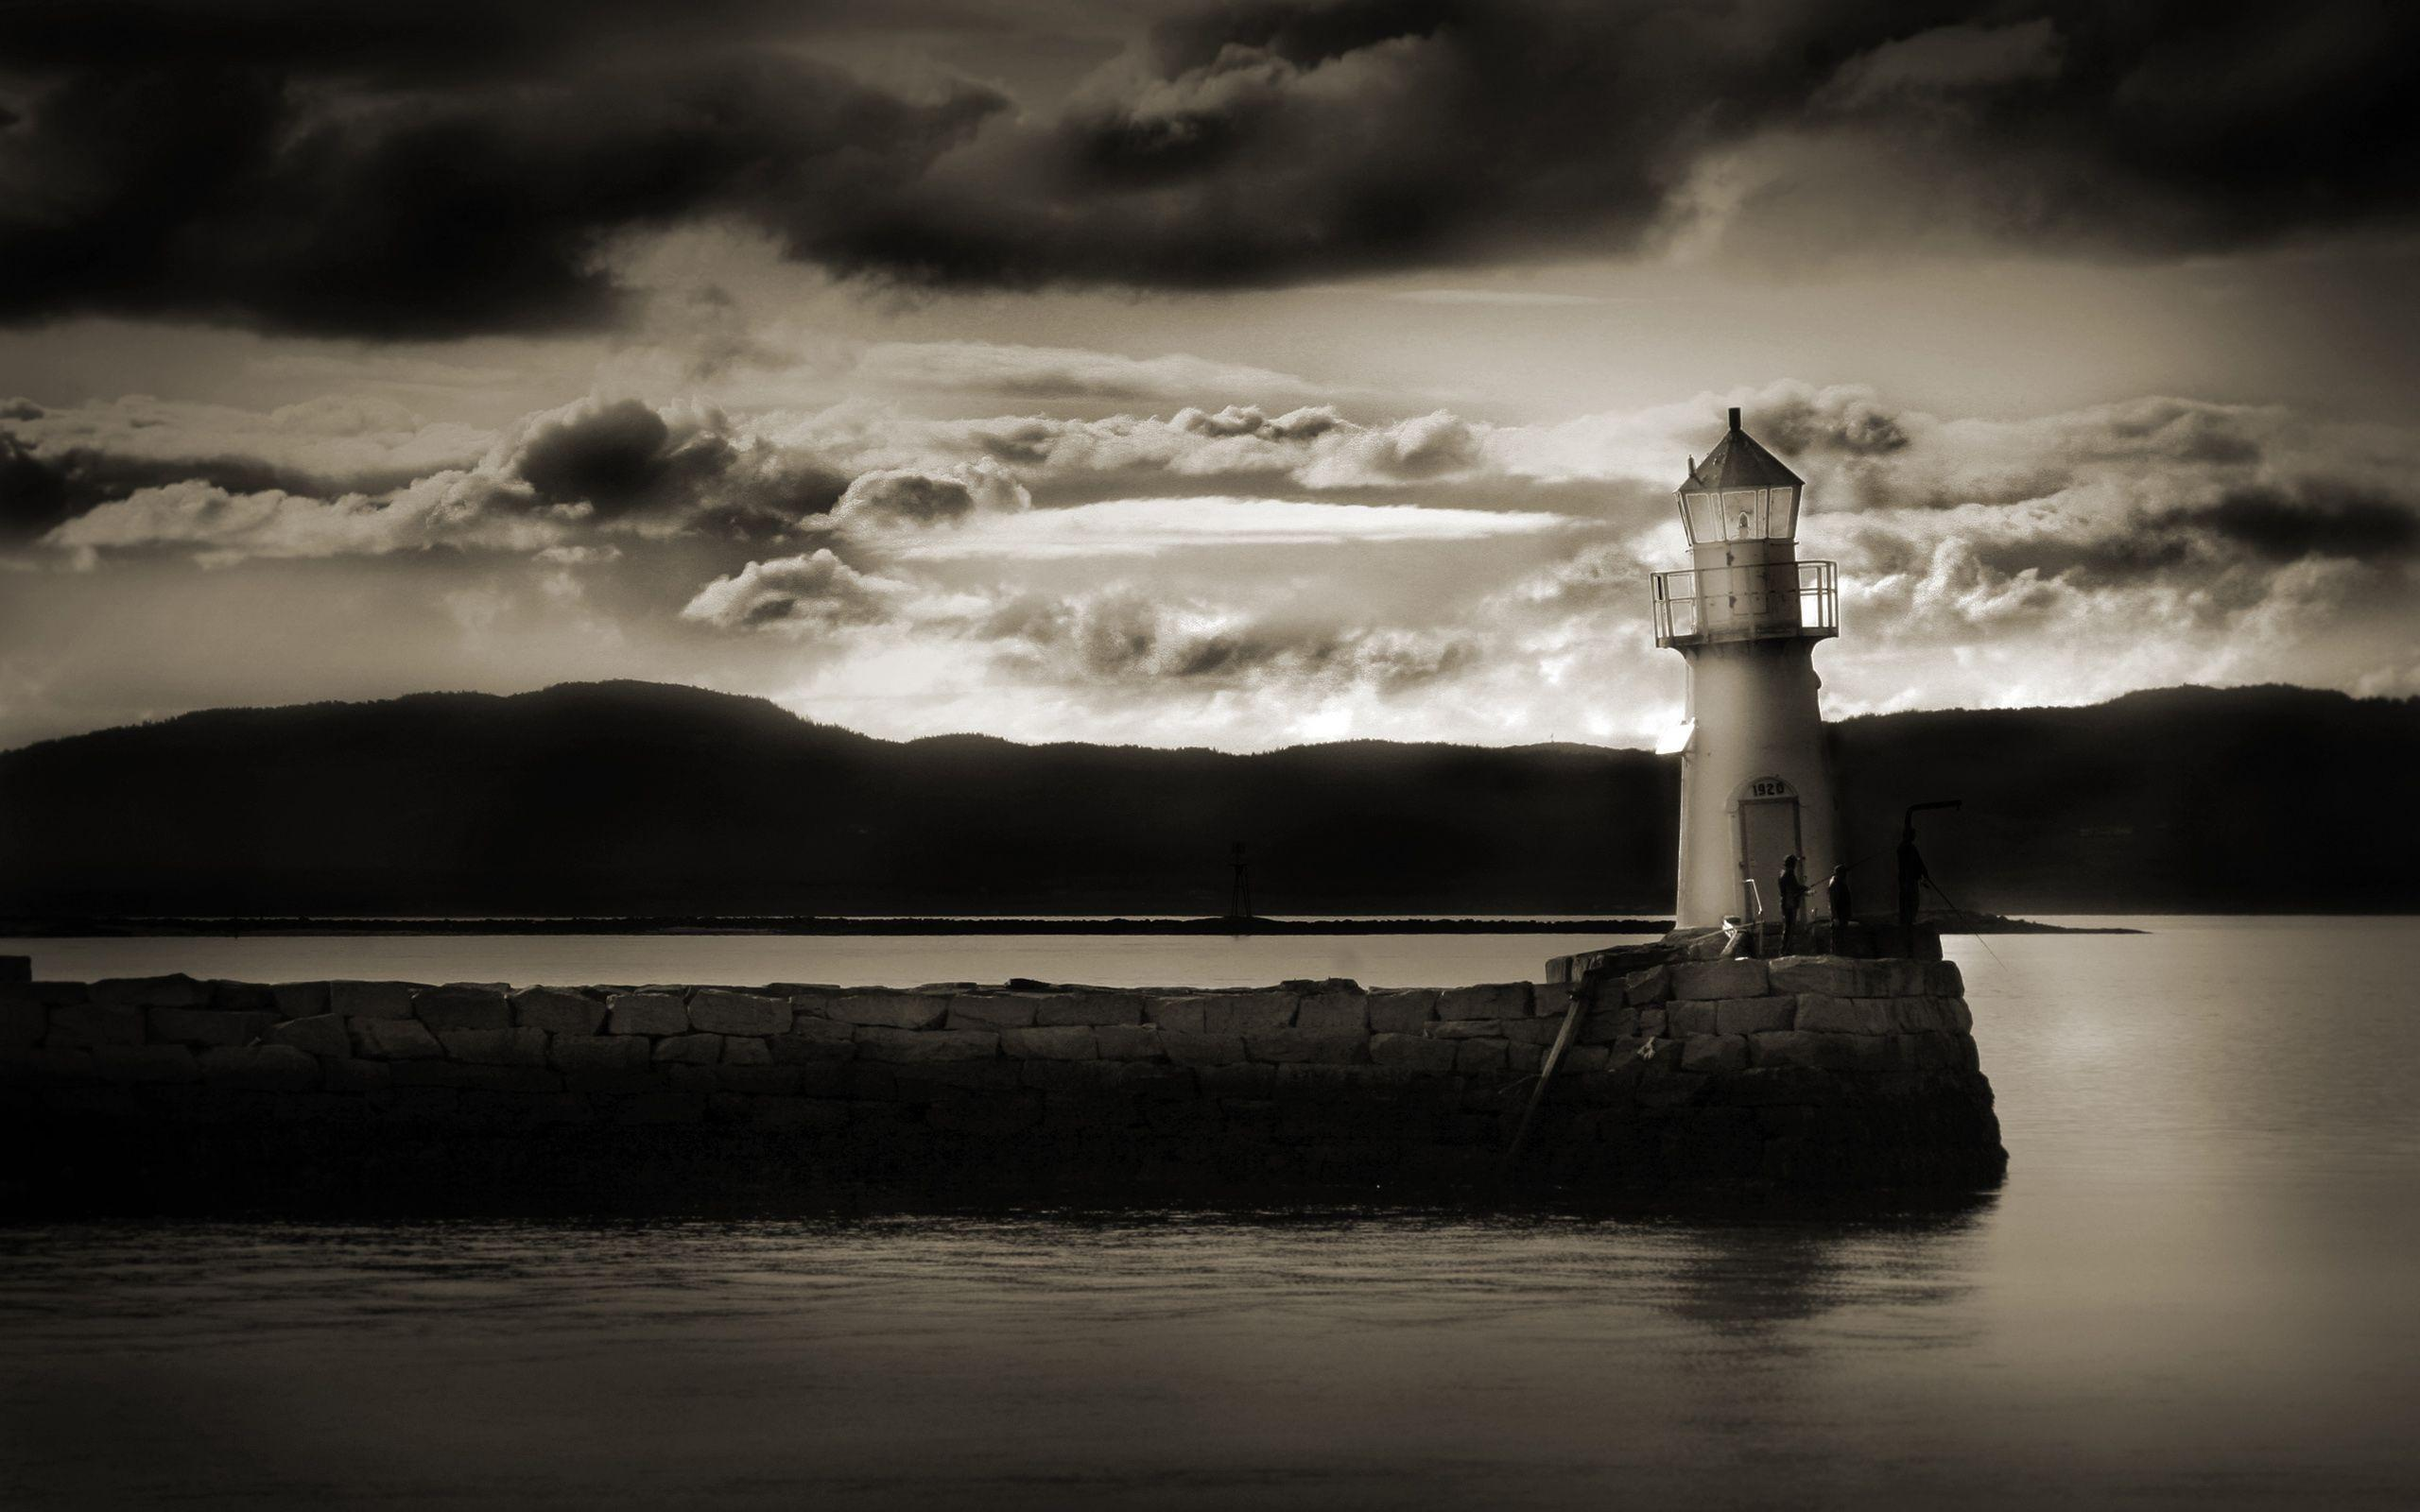 Art: Scotland Dark Lighthouse Beach Islands Hd Backgrounds ...